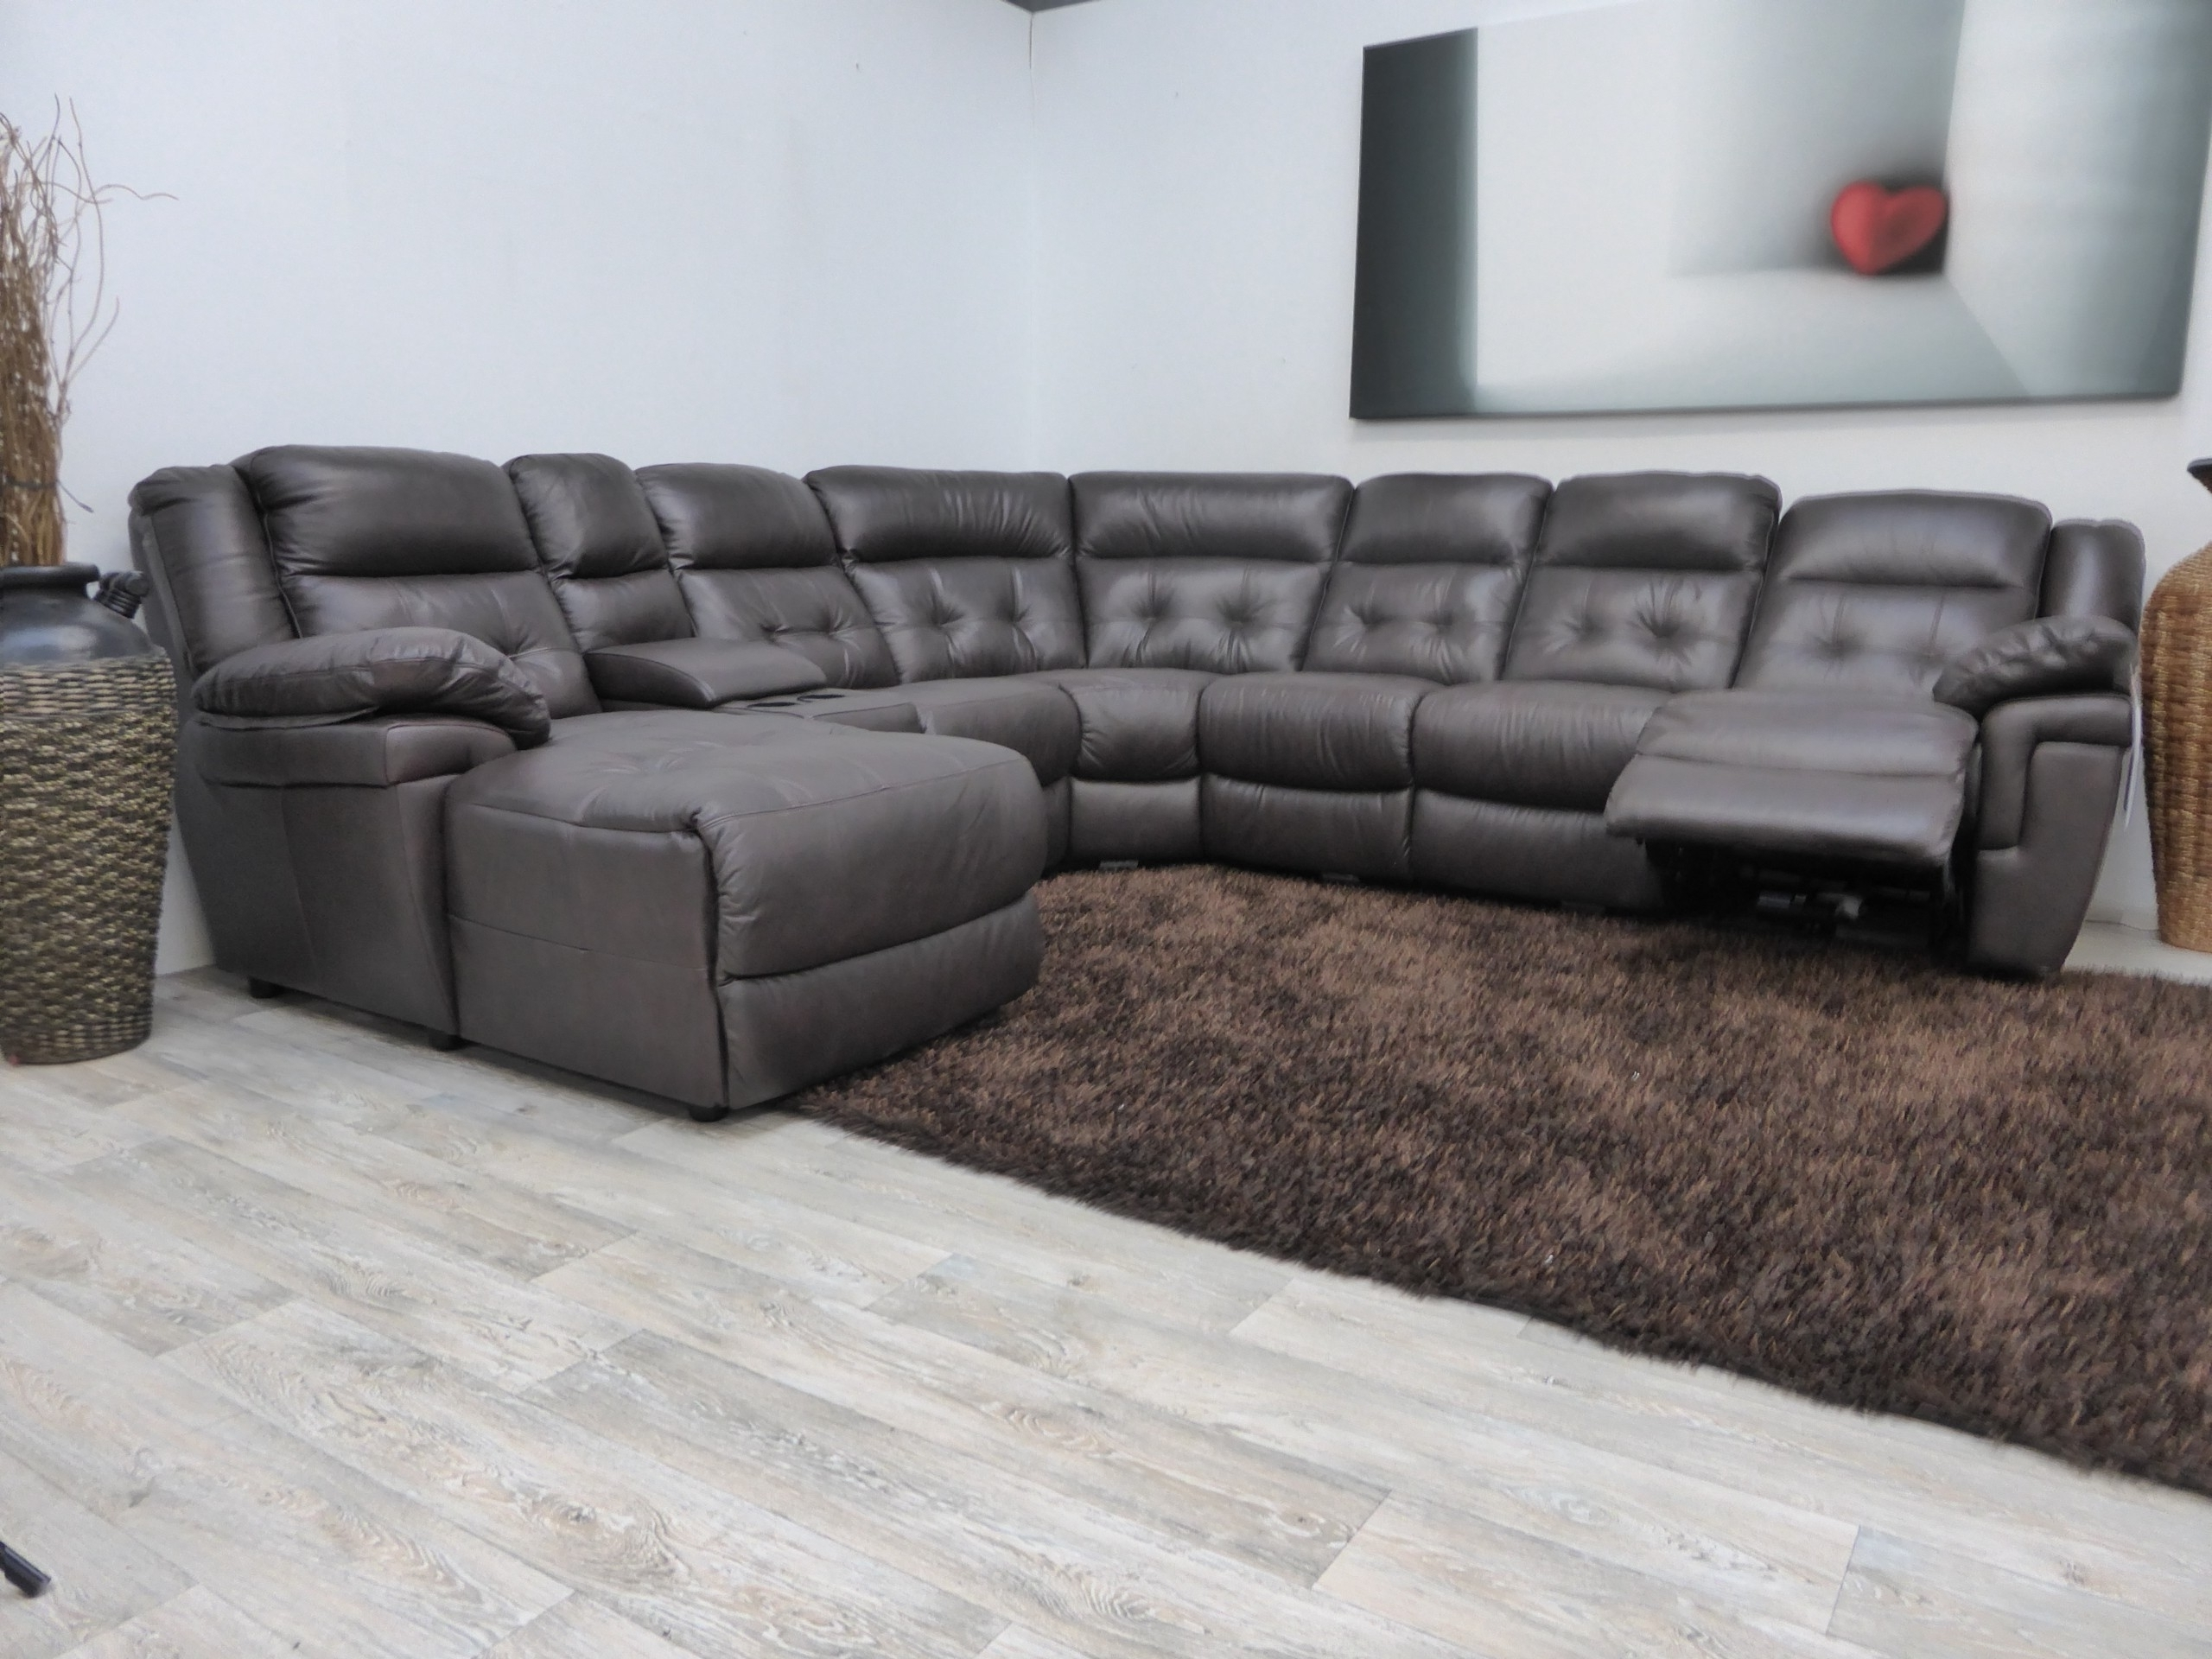 Trendy Perfect Lazy Boy Sectional Sofa 42 About Remodel Sofas And Couches Within Lazyboy Sectional Sofas (View 11 of 20)